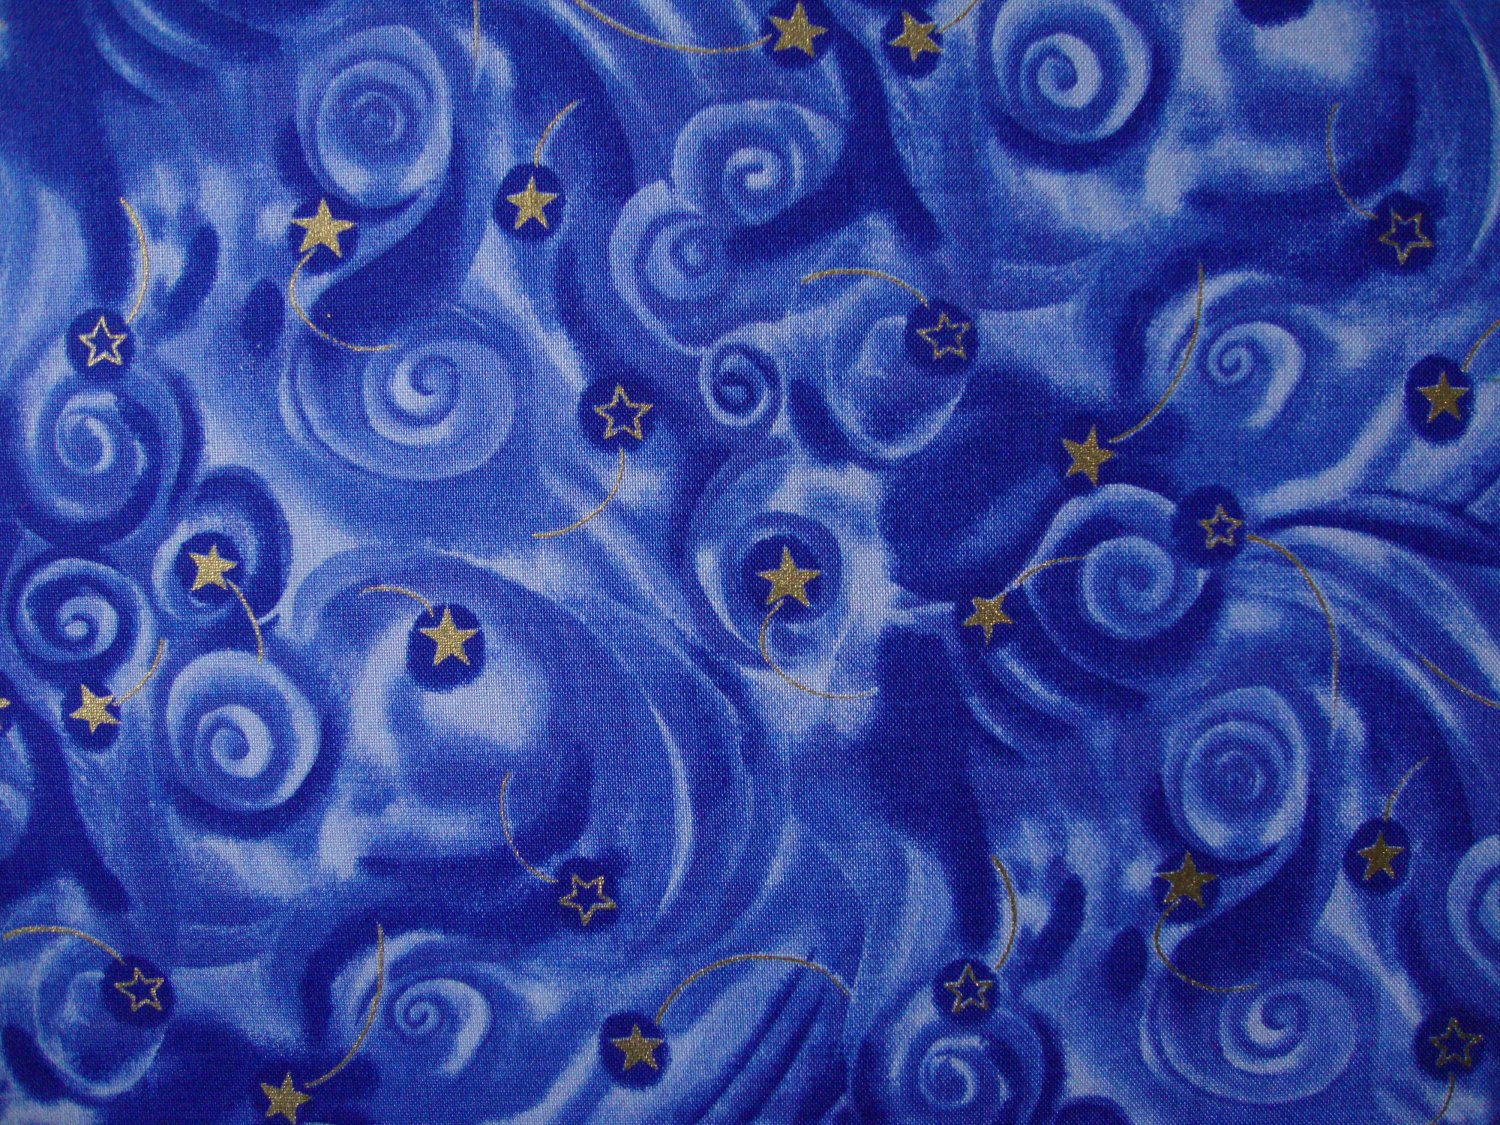 F8 Pegasus Gold Stars on Blue Swirls Mystical Cotton Fat Eighth F8th by Fabric Visions